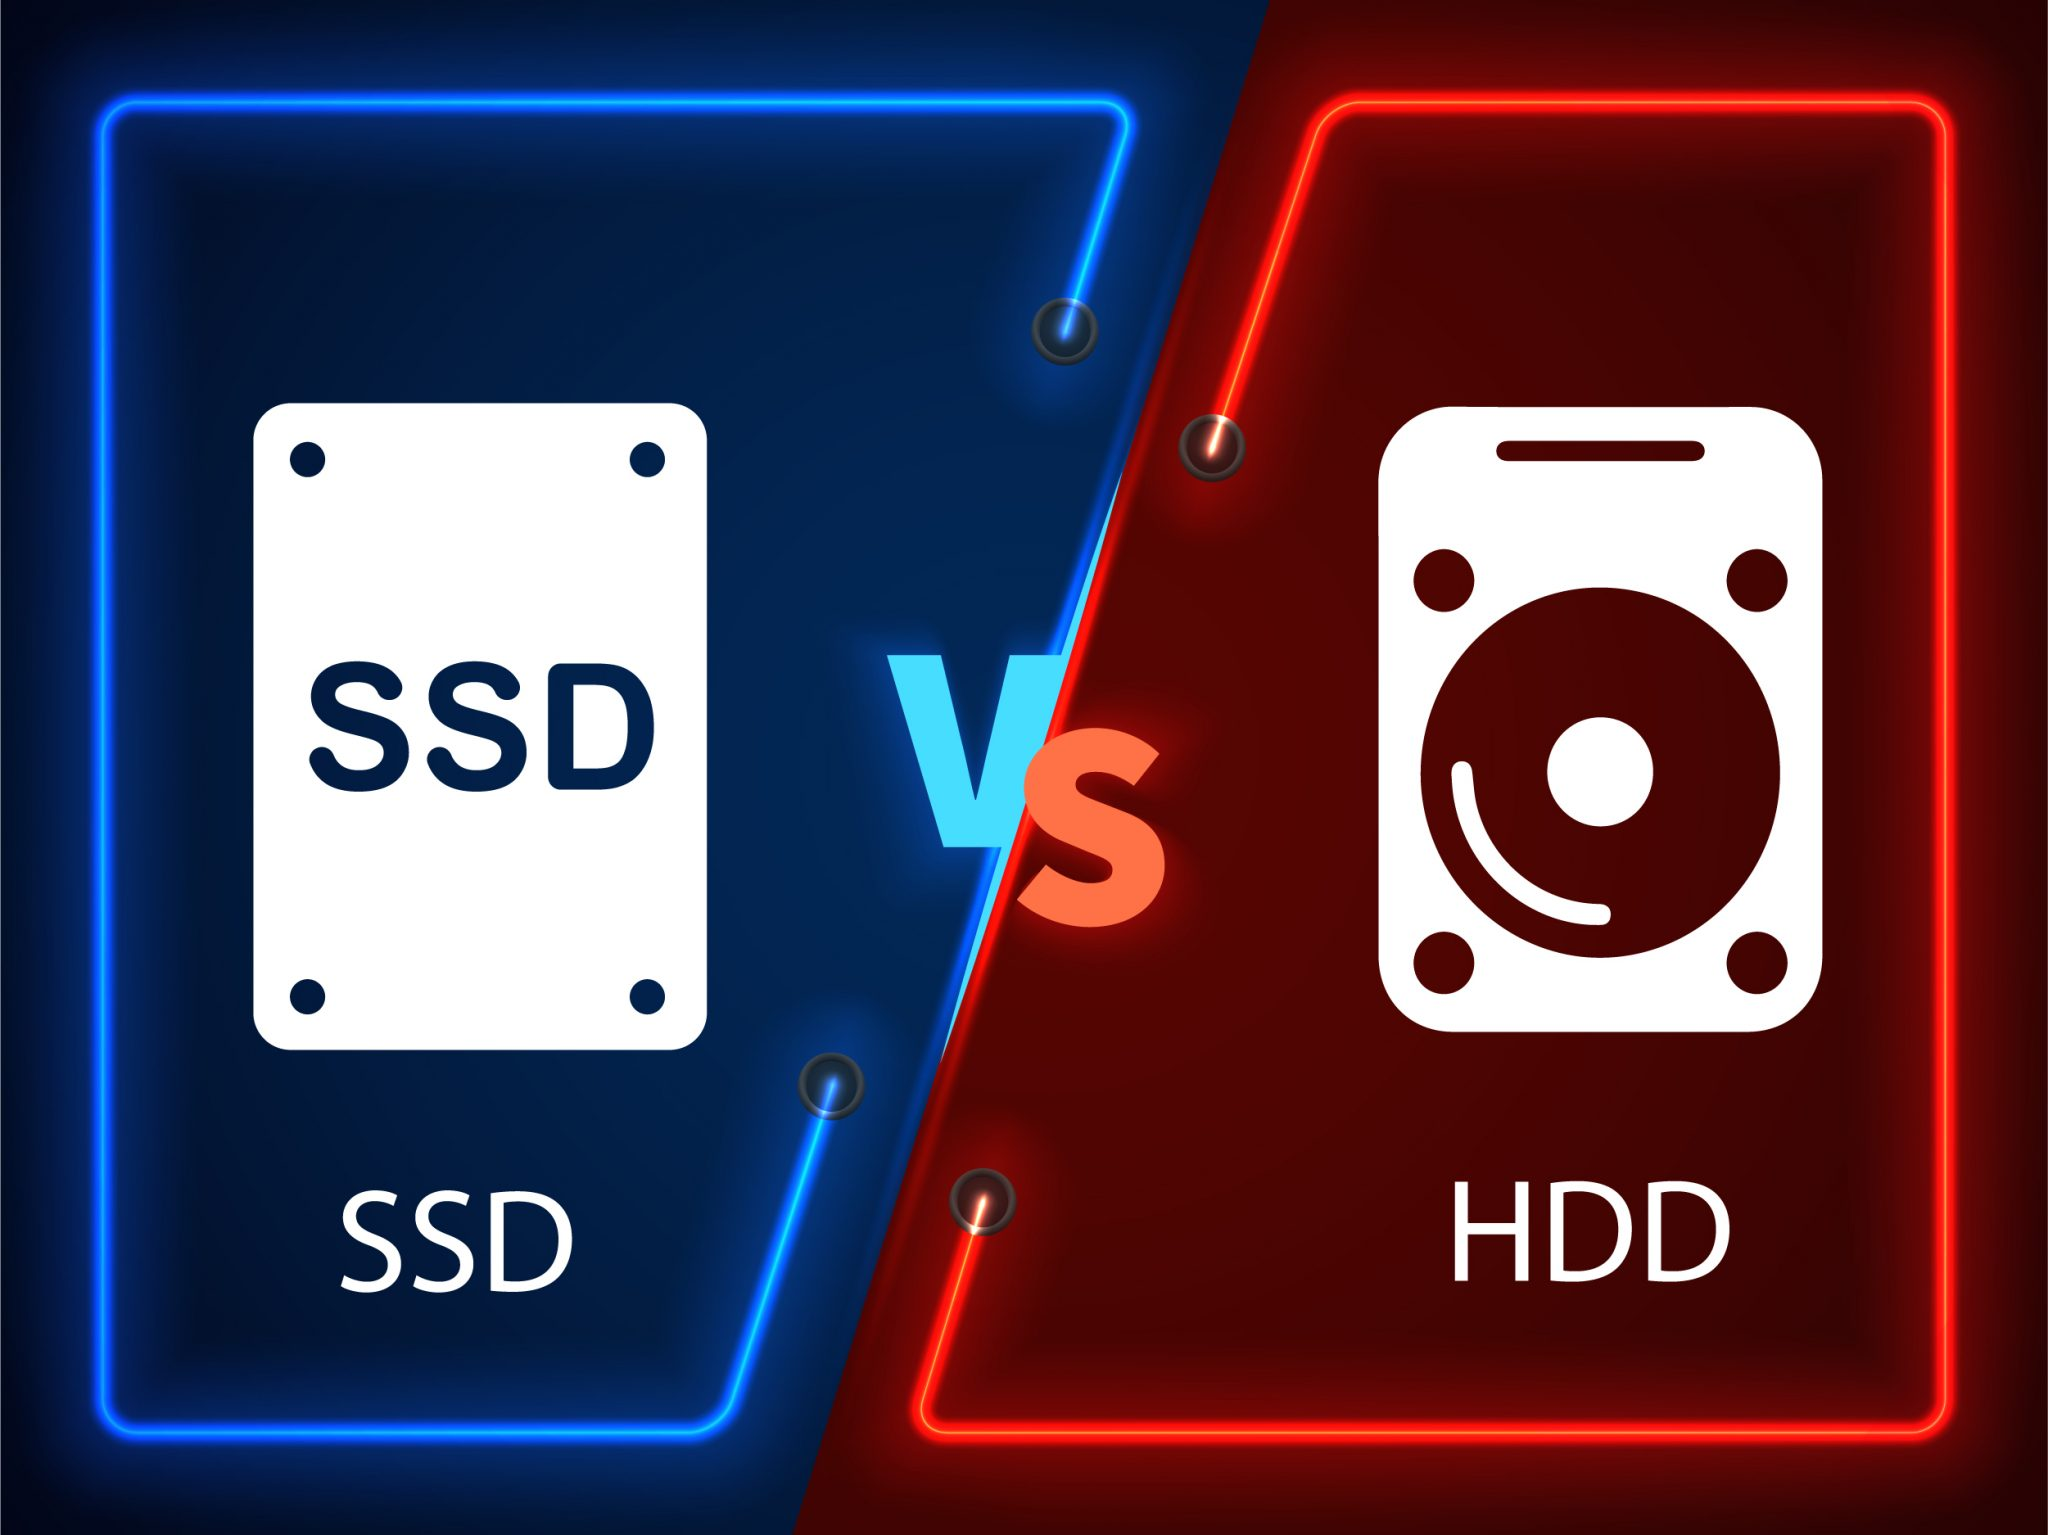 SSD and HDD differences